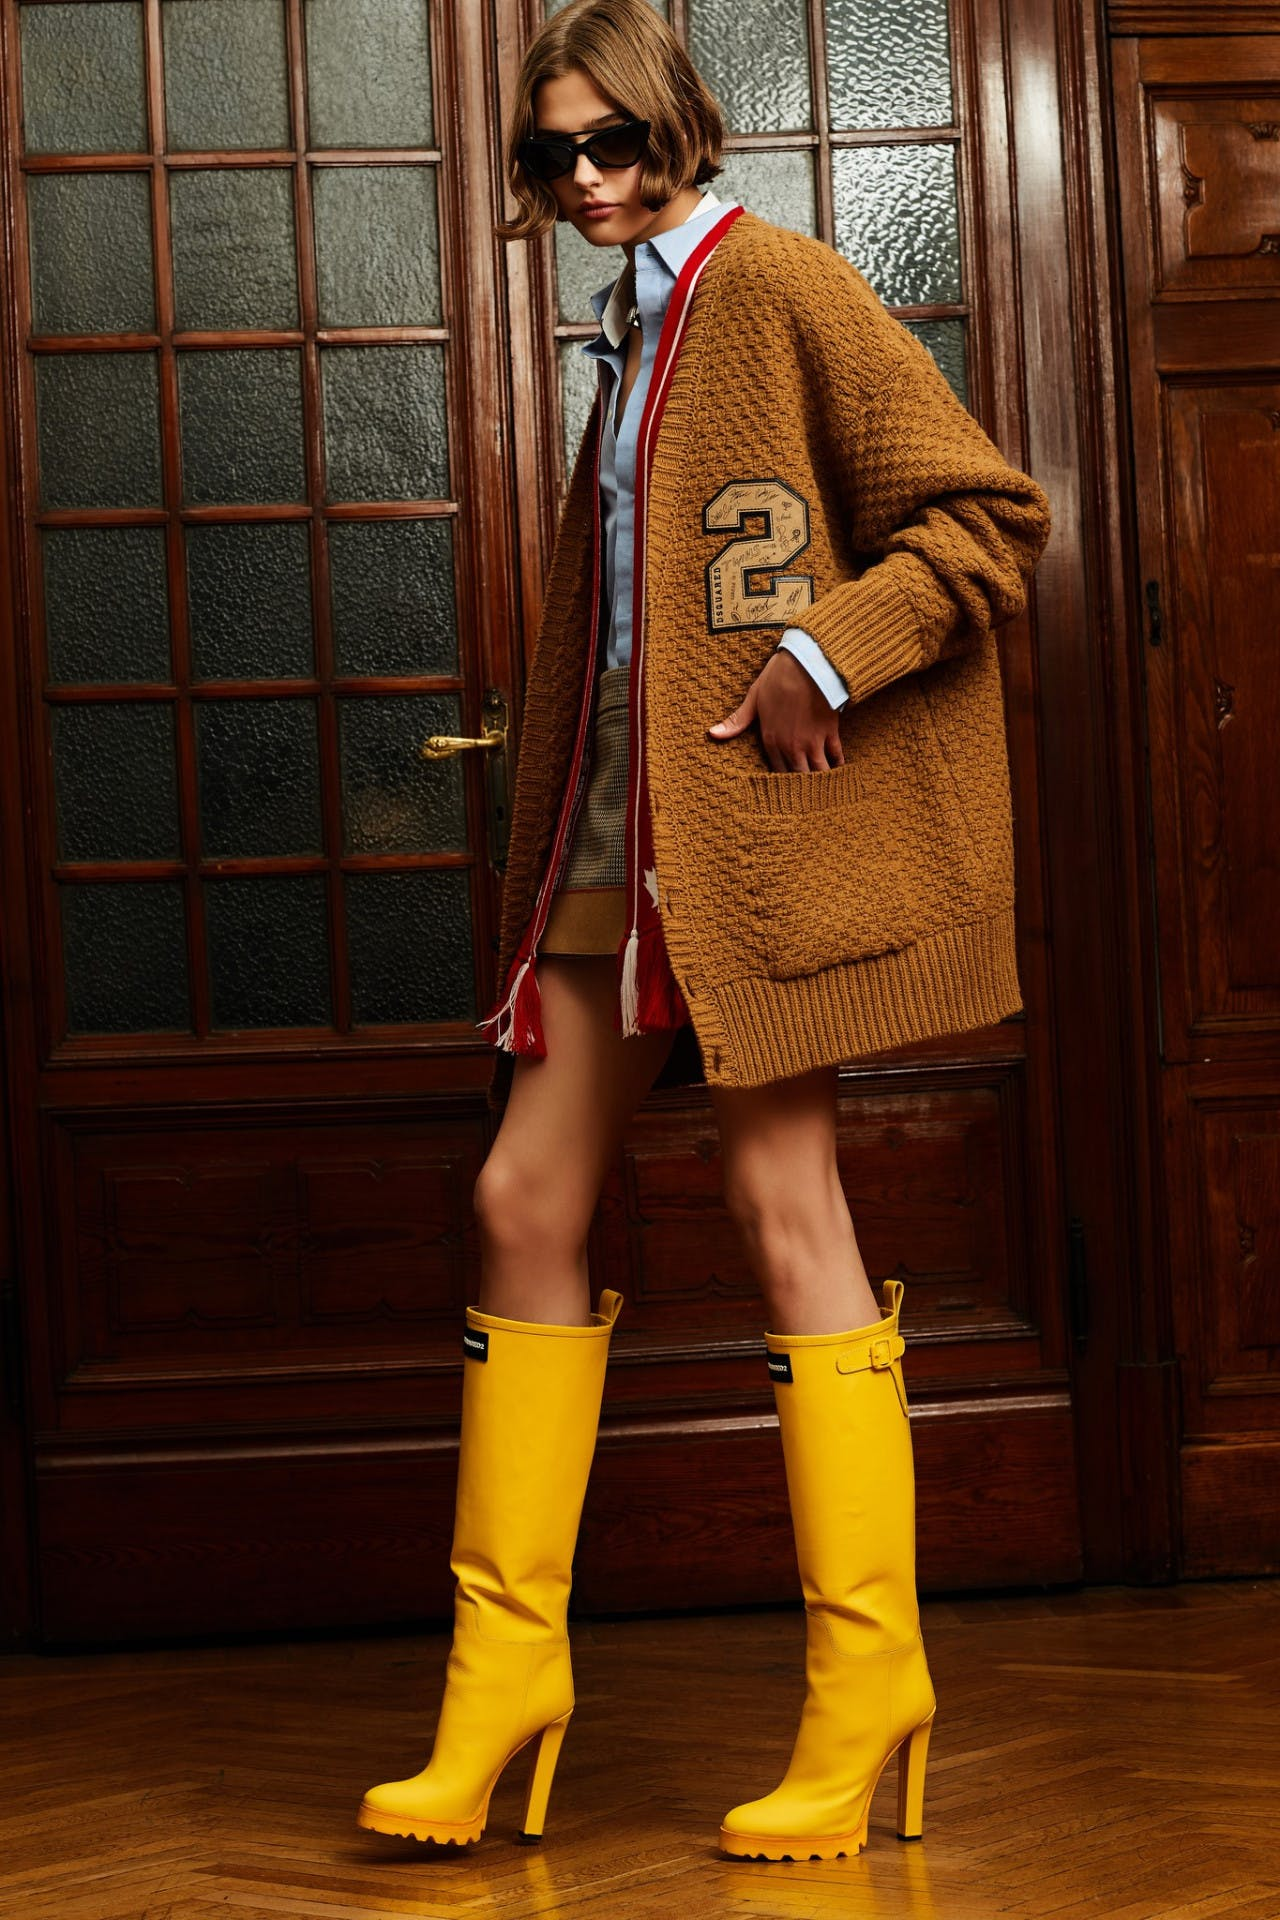 dsquared2 pre fall milan fashion runway backstage pre order trunk show school jacket yellow boots showroom